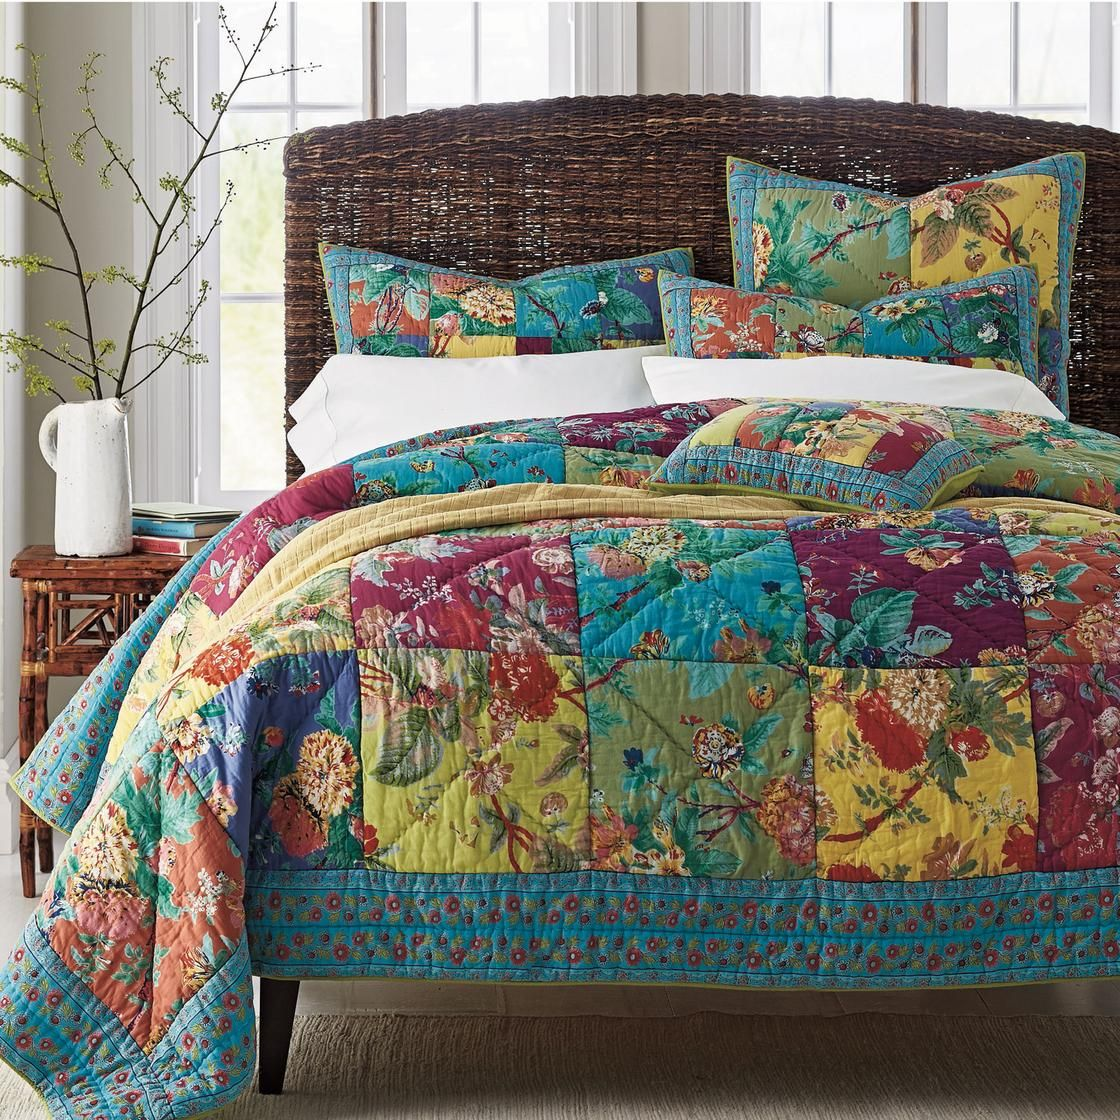 chelsea quilt / sham - a celebration of color and pattern, our